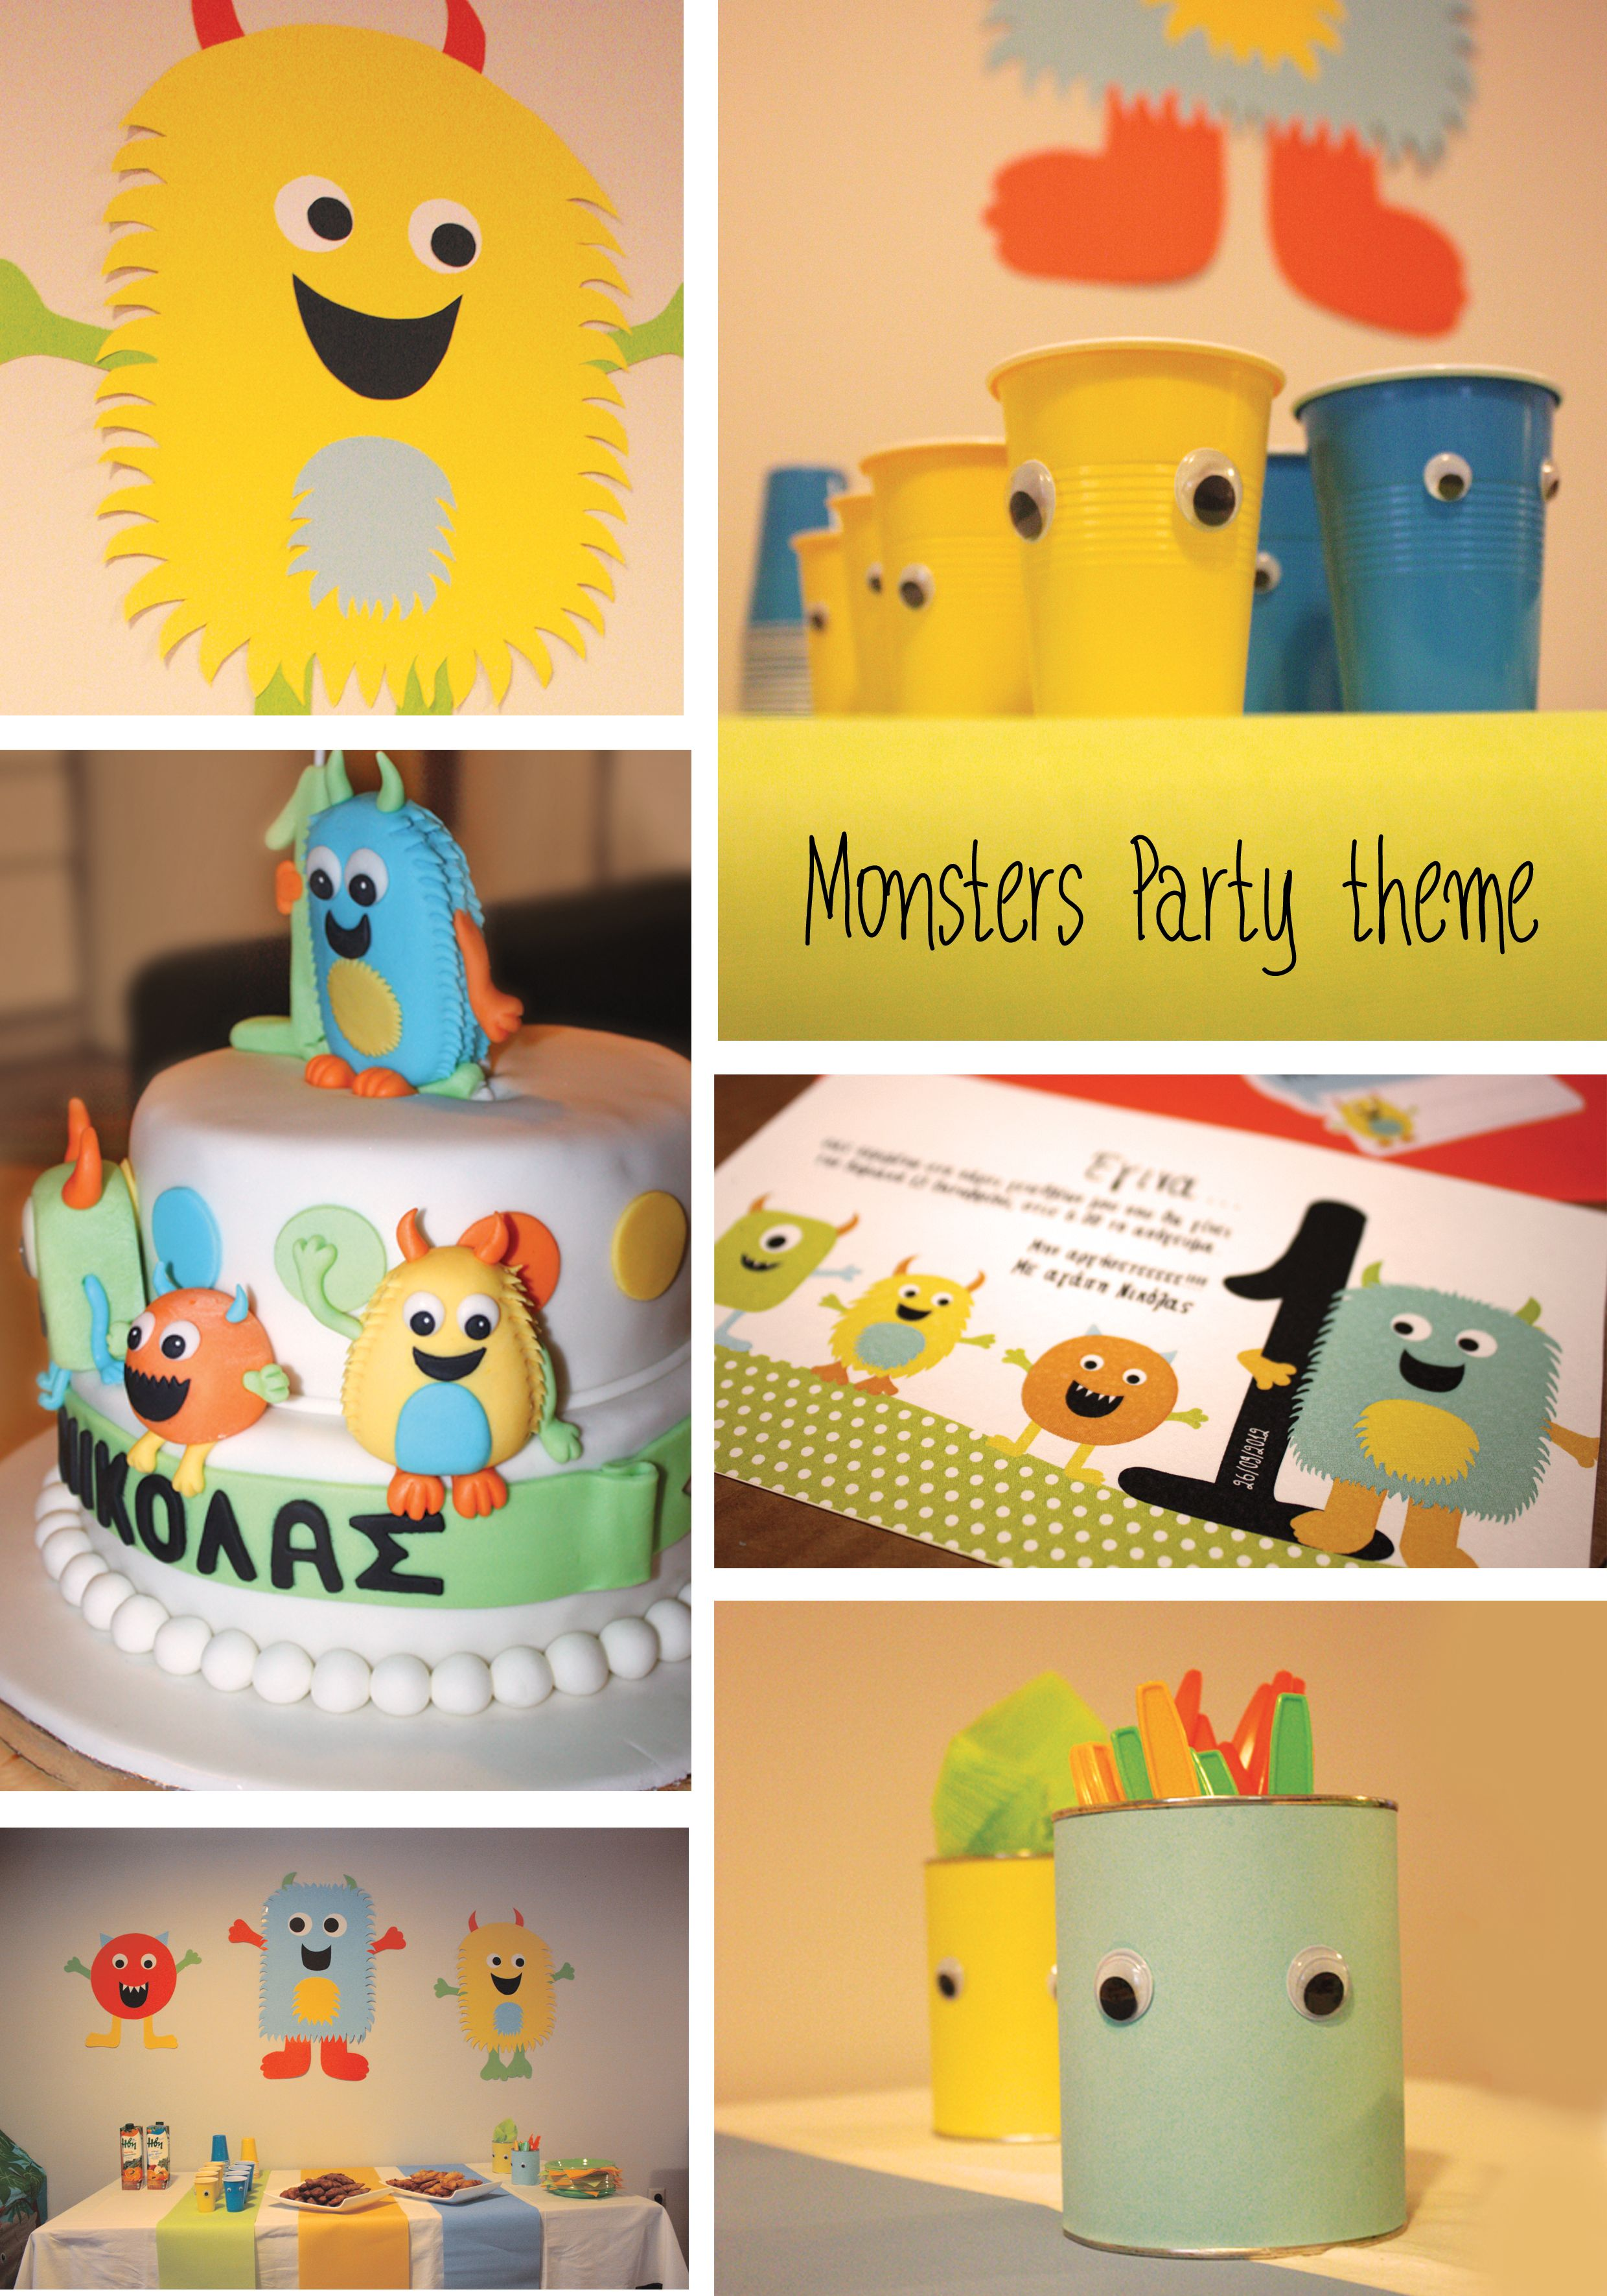 Monsters Party Theme